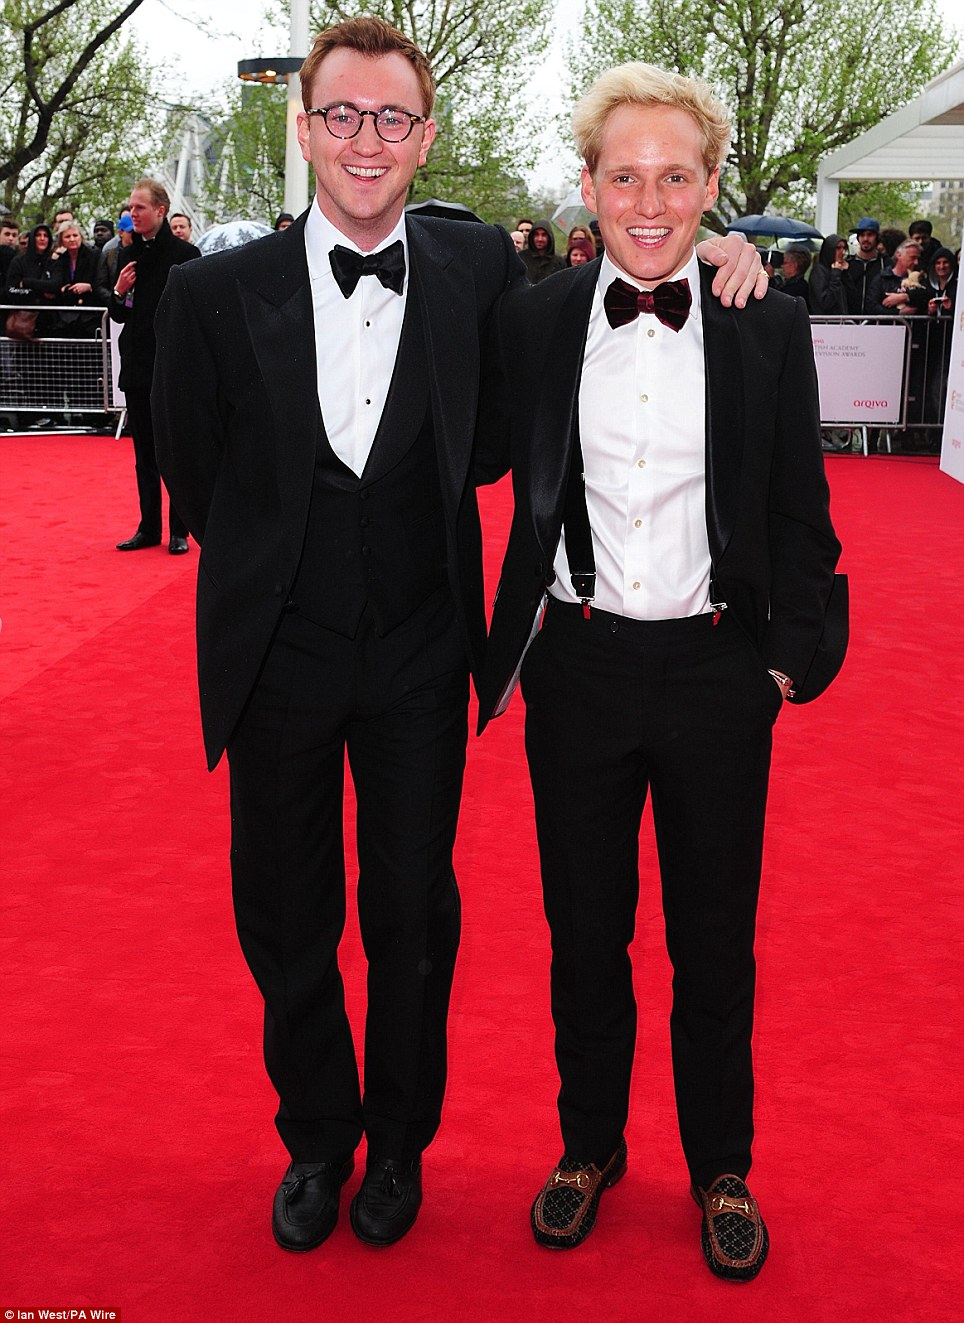 Chelsea boys: Reality stars Francis Boulle (left) and Jamie Laing looked pretty dashing in their finery ahead of the awards ceremony in London